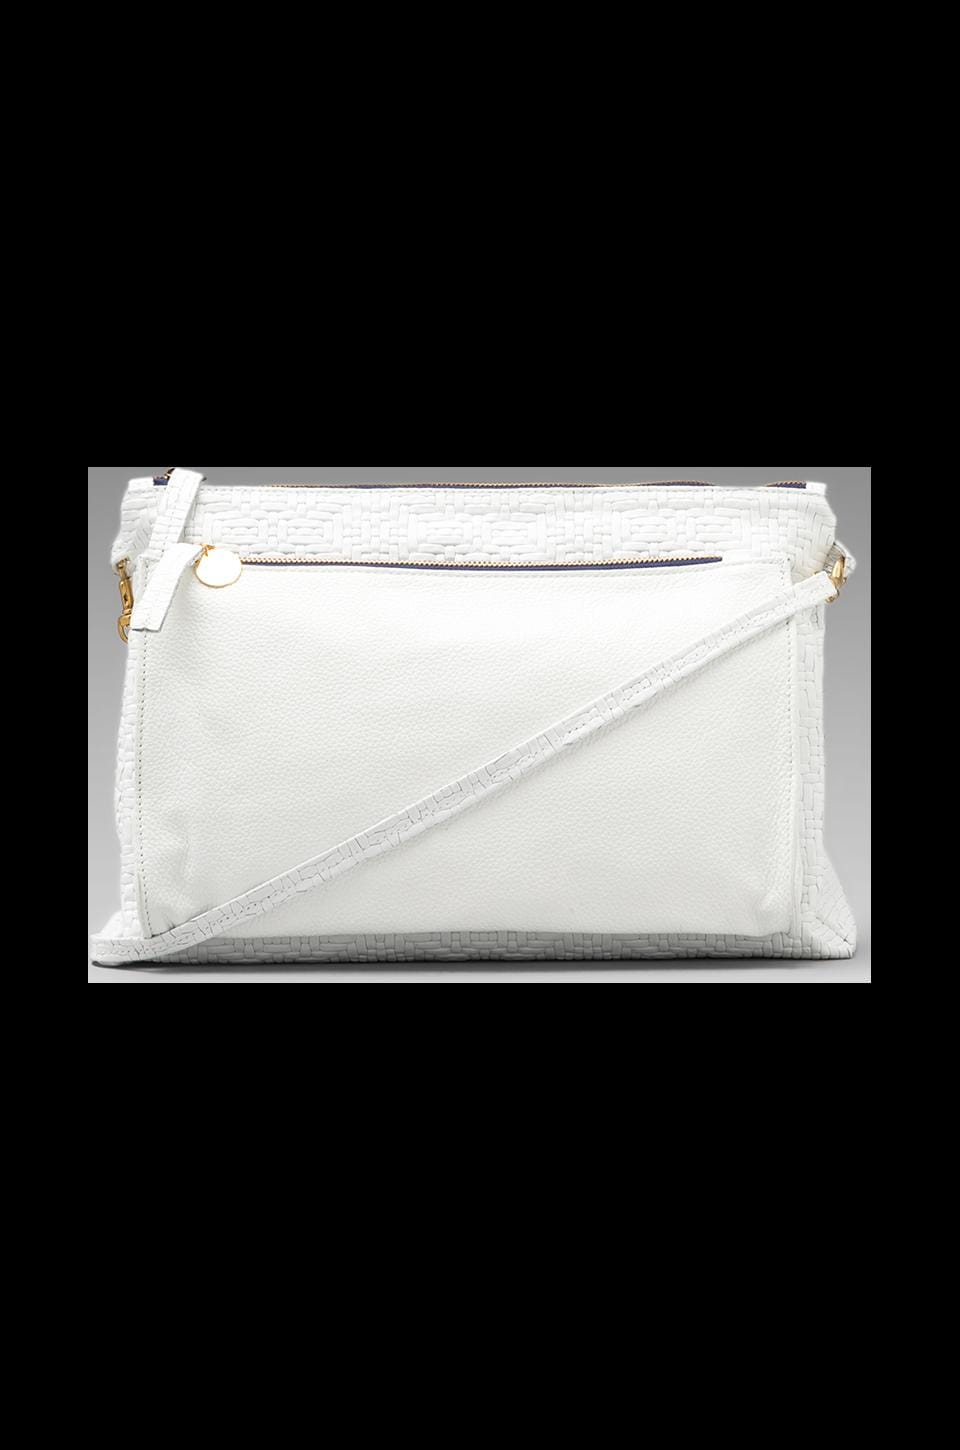 Clare V. Gosee Clutch in White